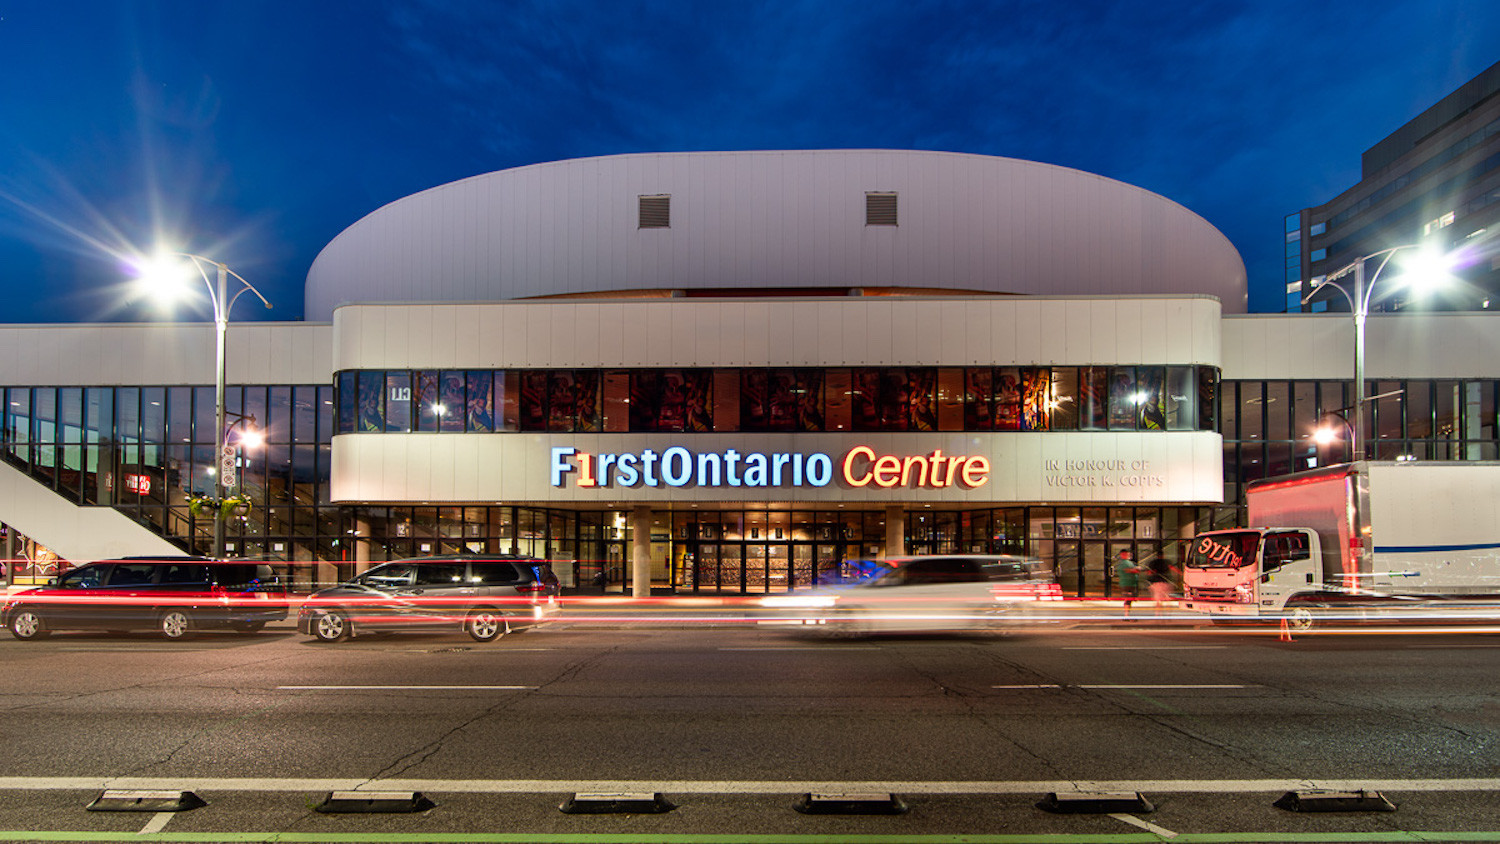 FirstOntario Centre - Exterior - PC: Kevin Thom